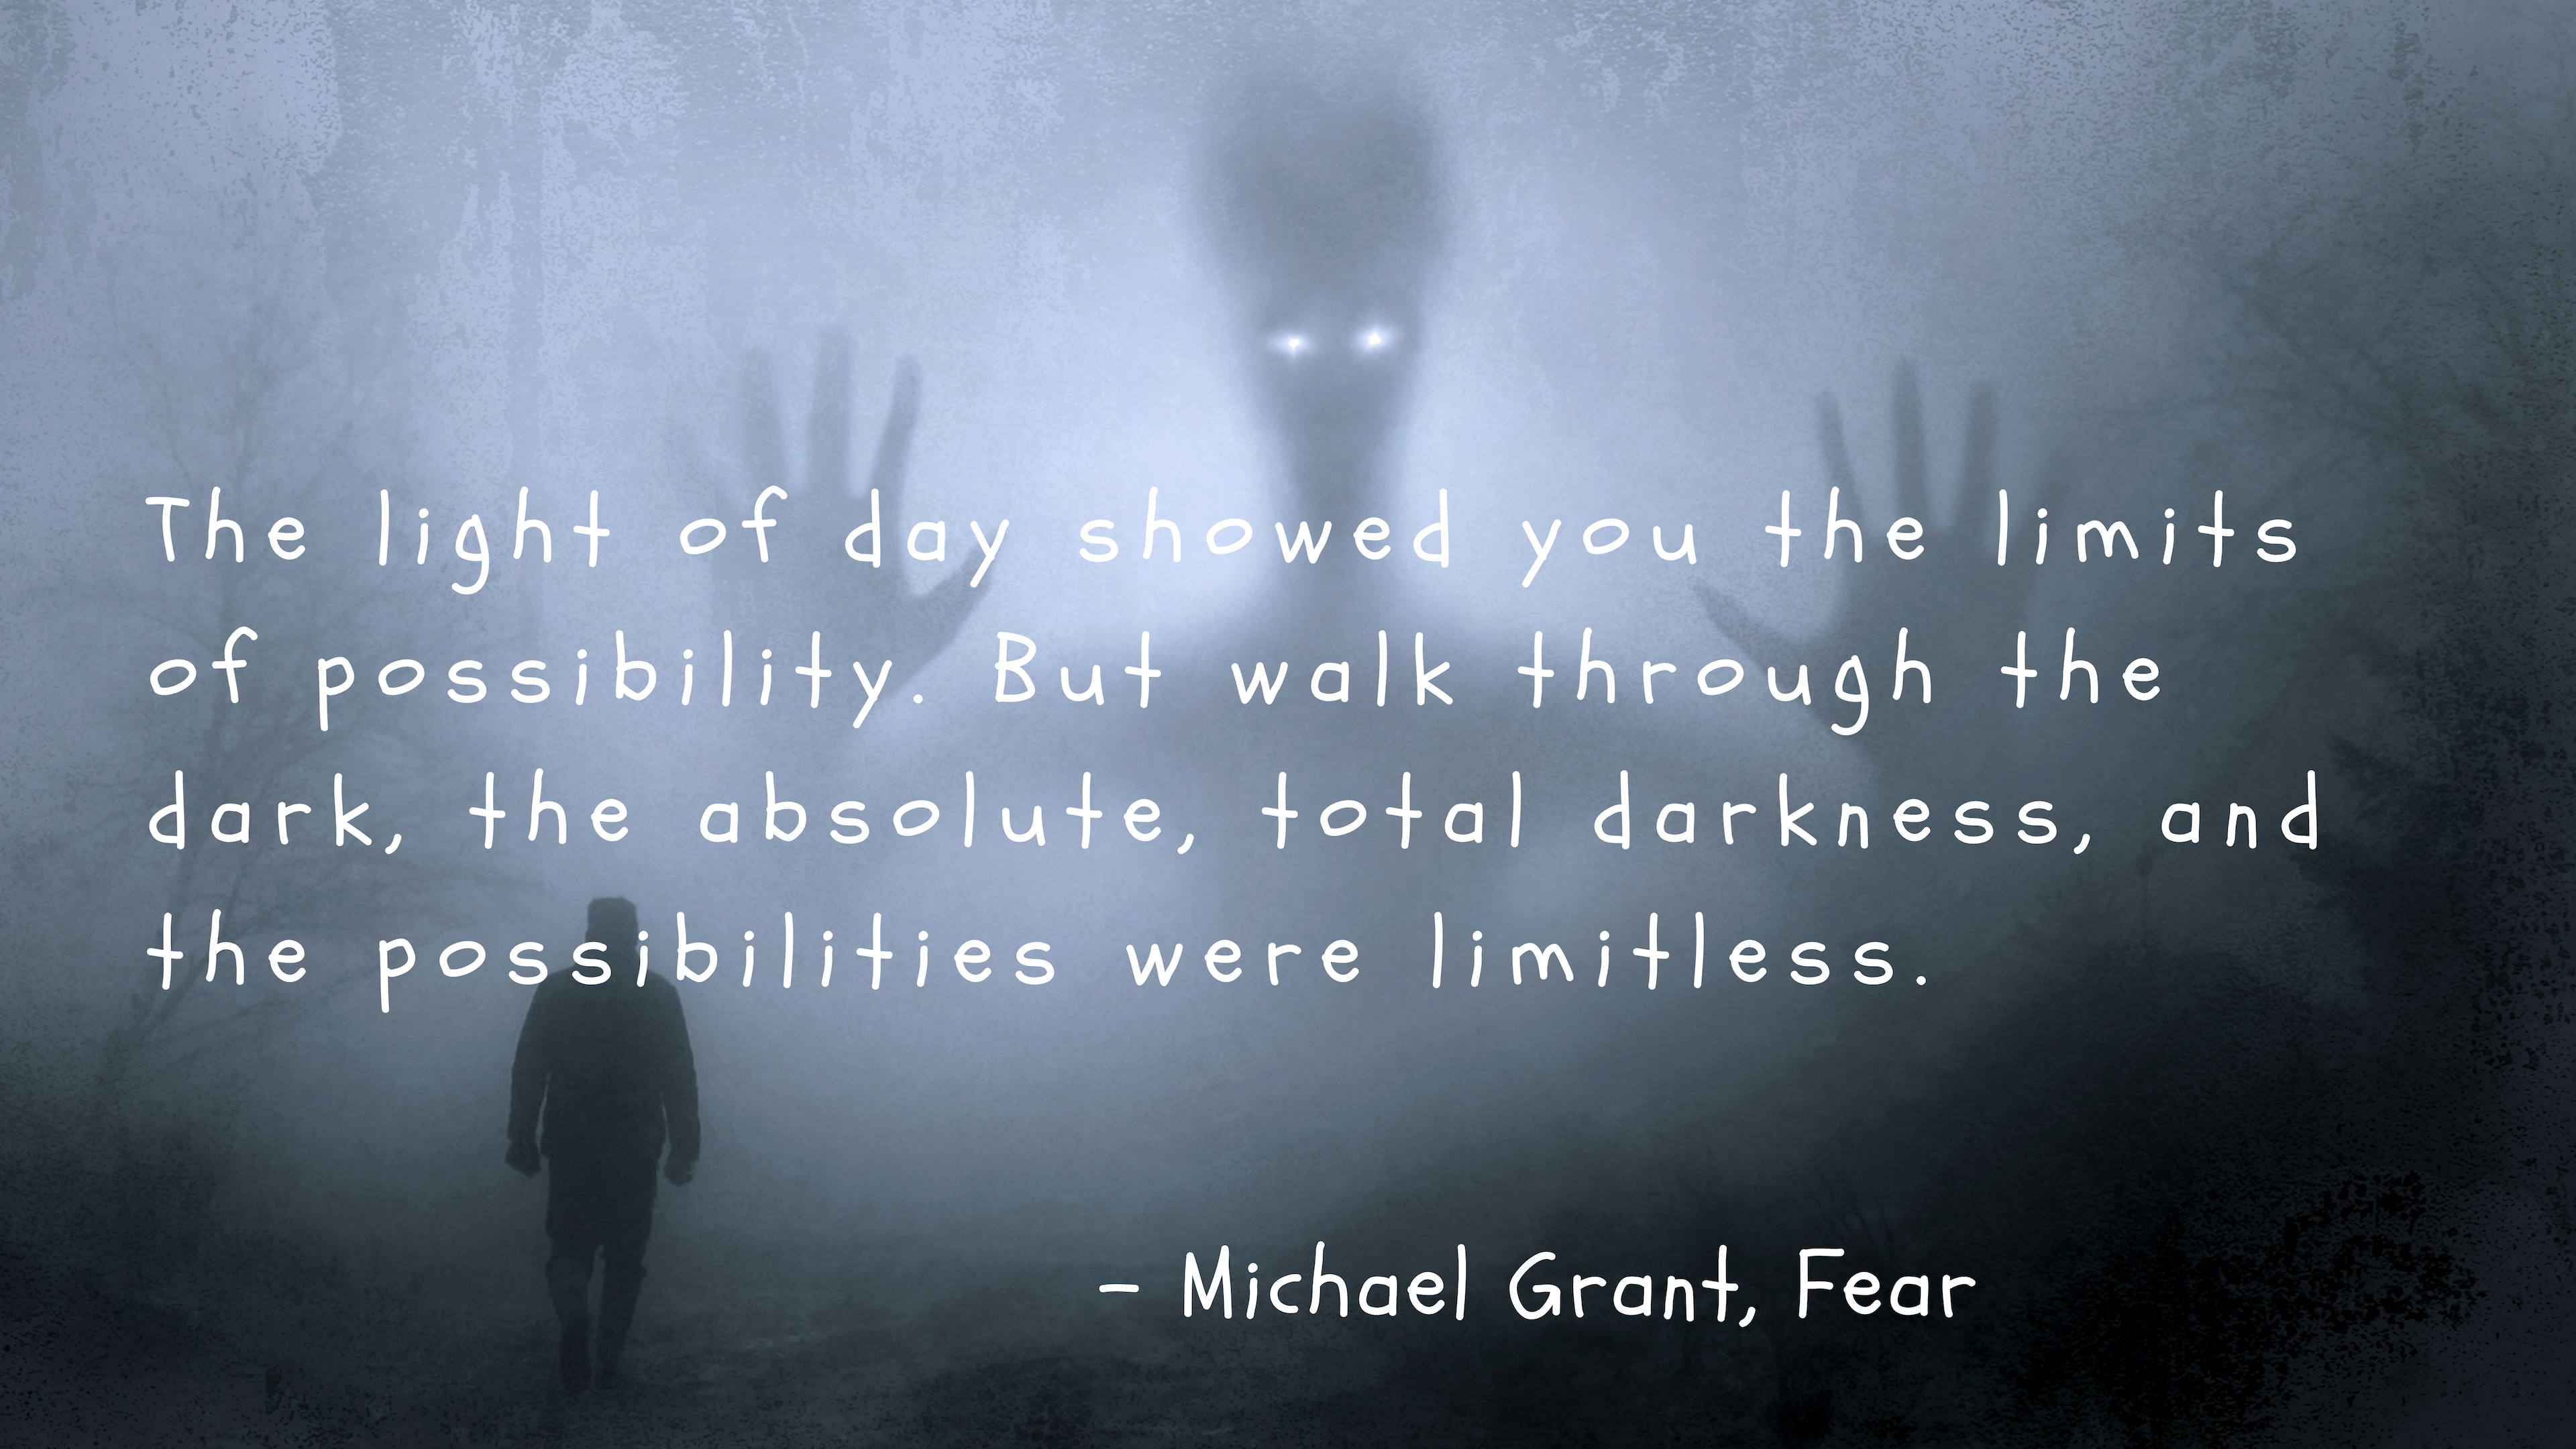 - Michael Gran+, Fear https://inspirational.ly